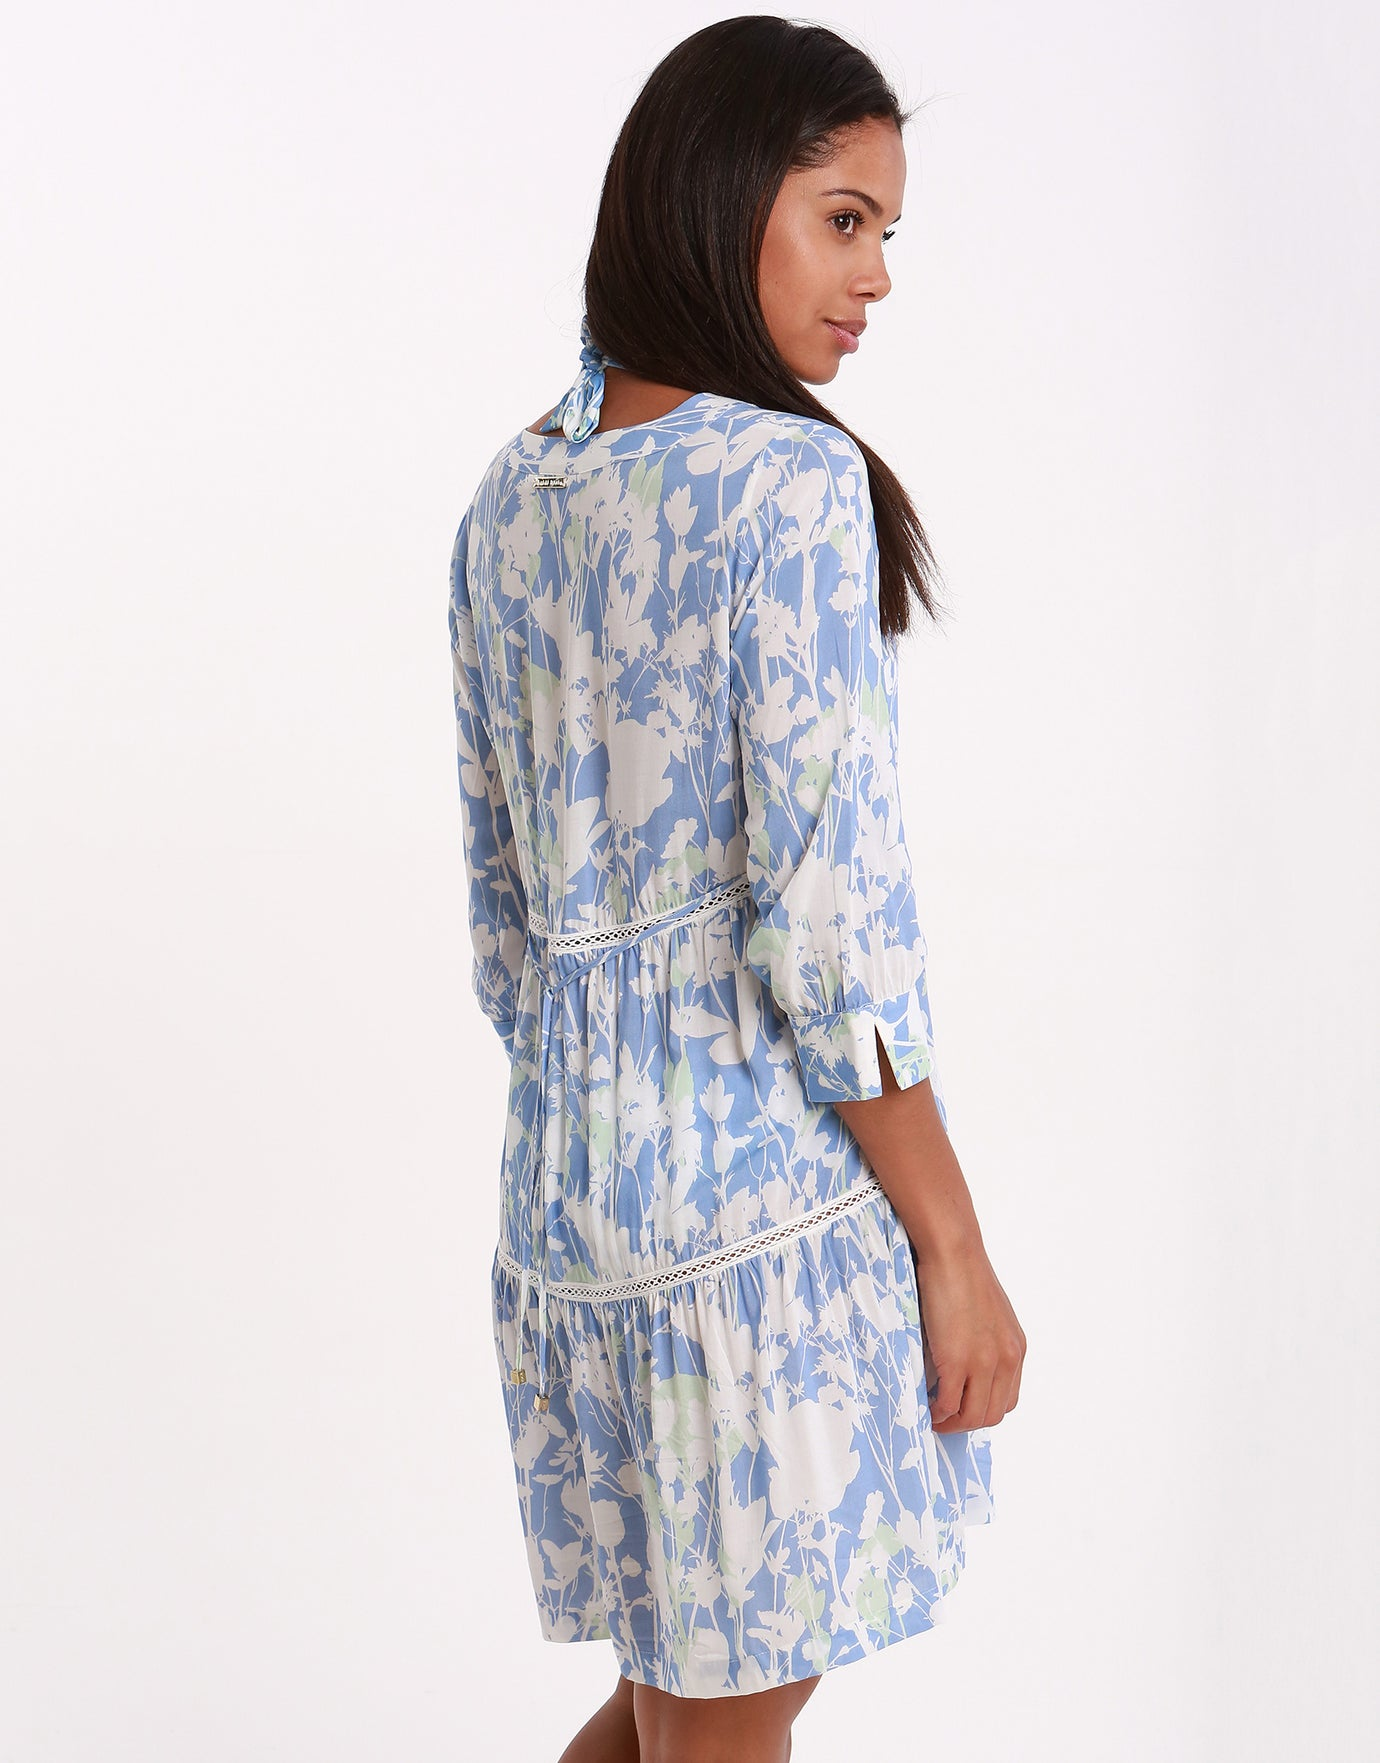 Heidi Klein Langkawi V Neck Tunic Dress - Print